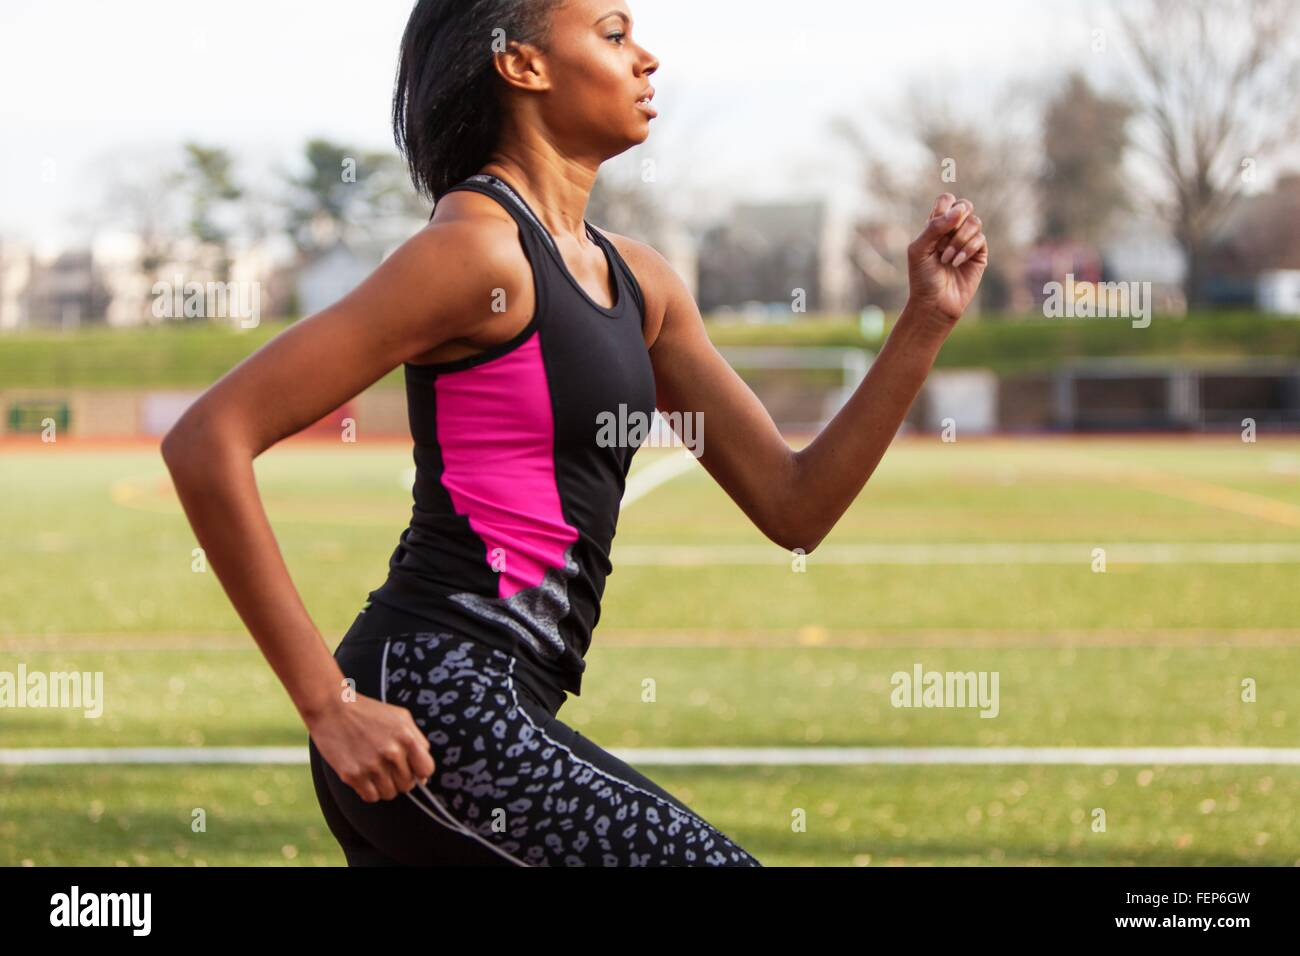 Young woman running on race track - Stock Image